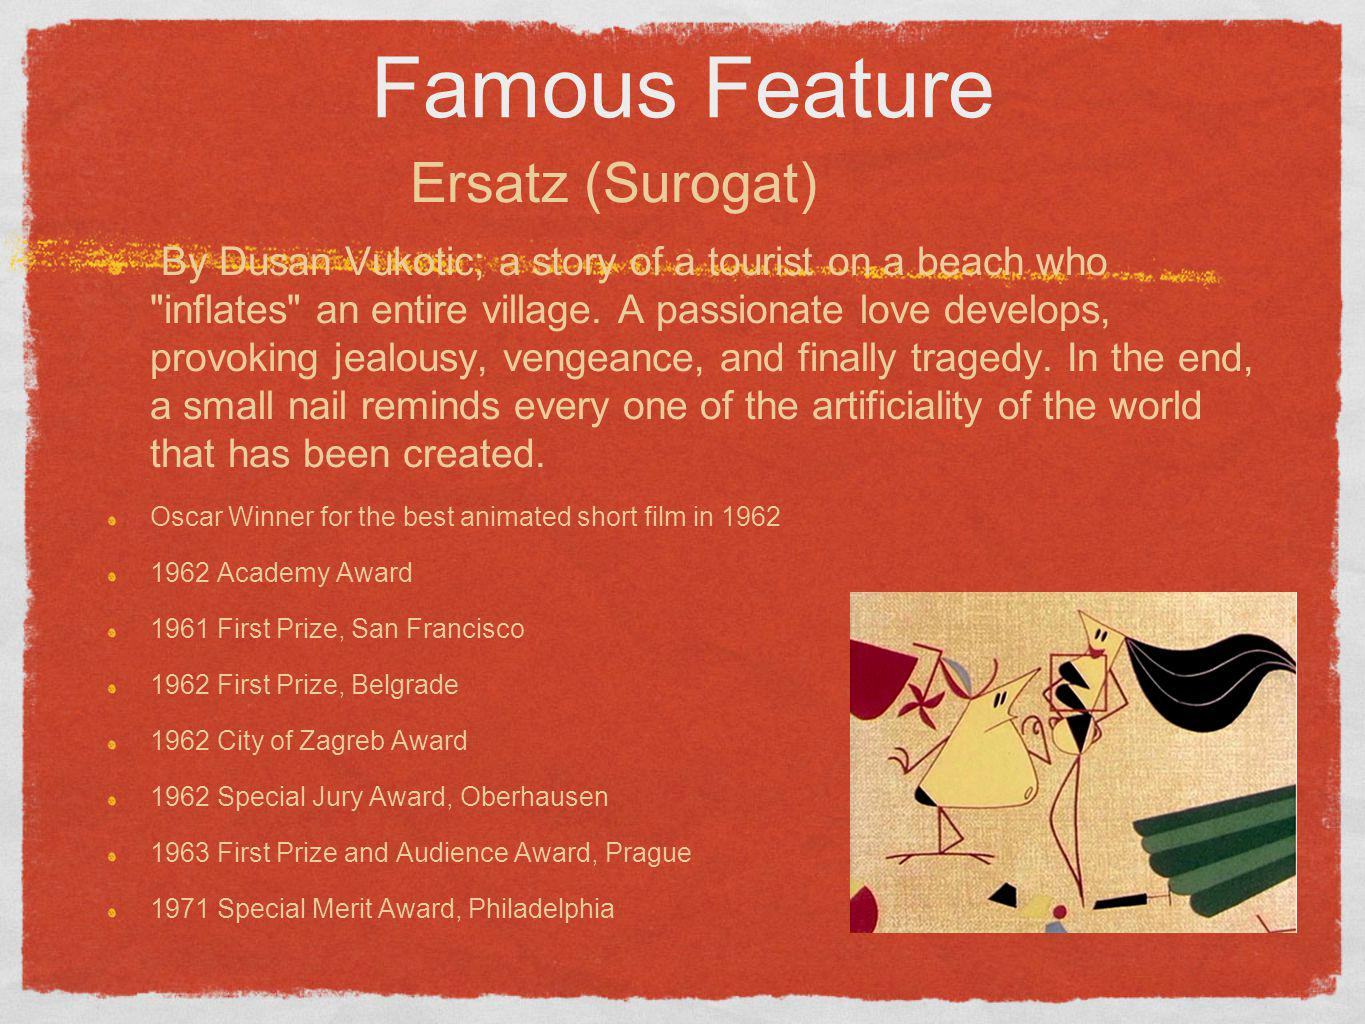 Famous Feature Ersatz (Surogat)